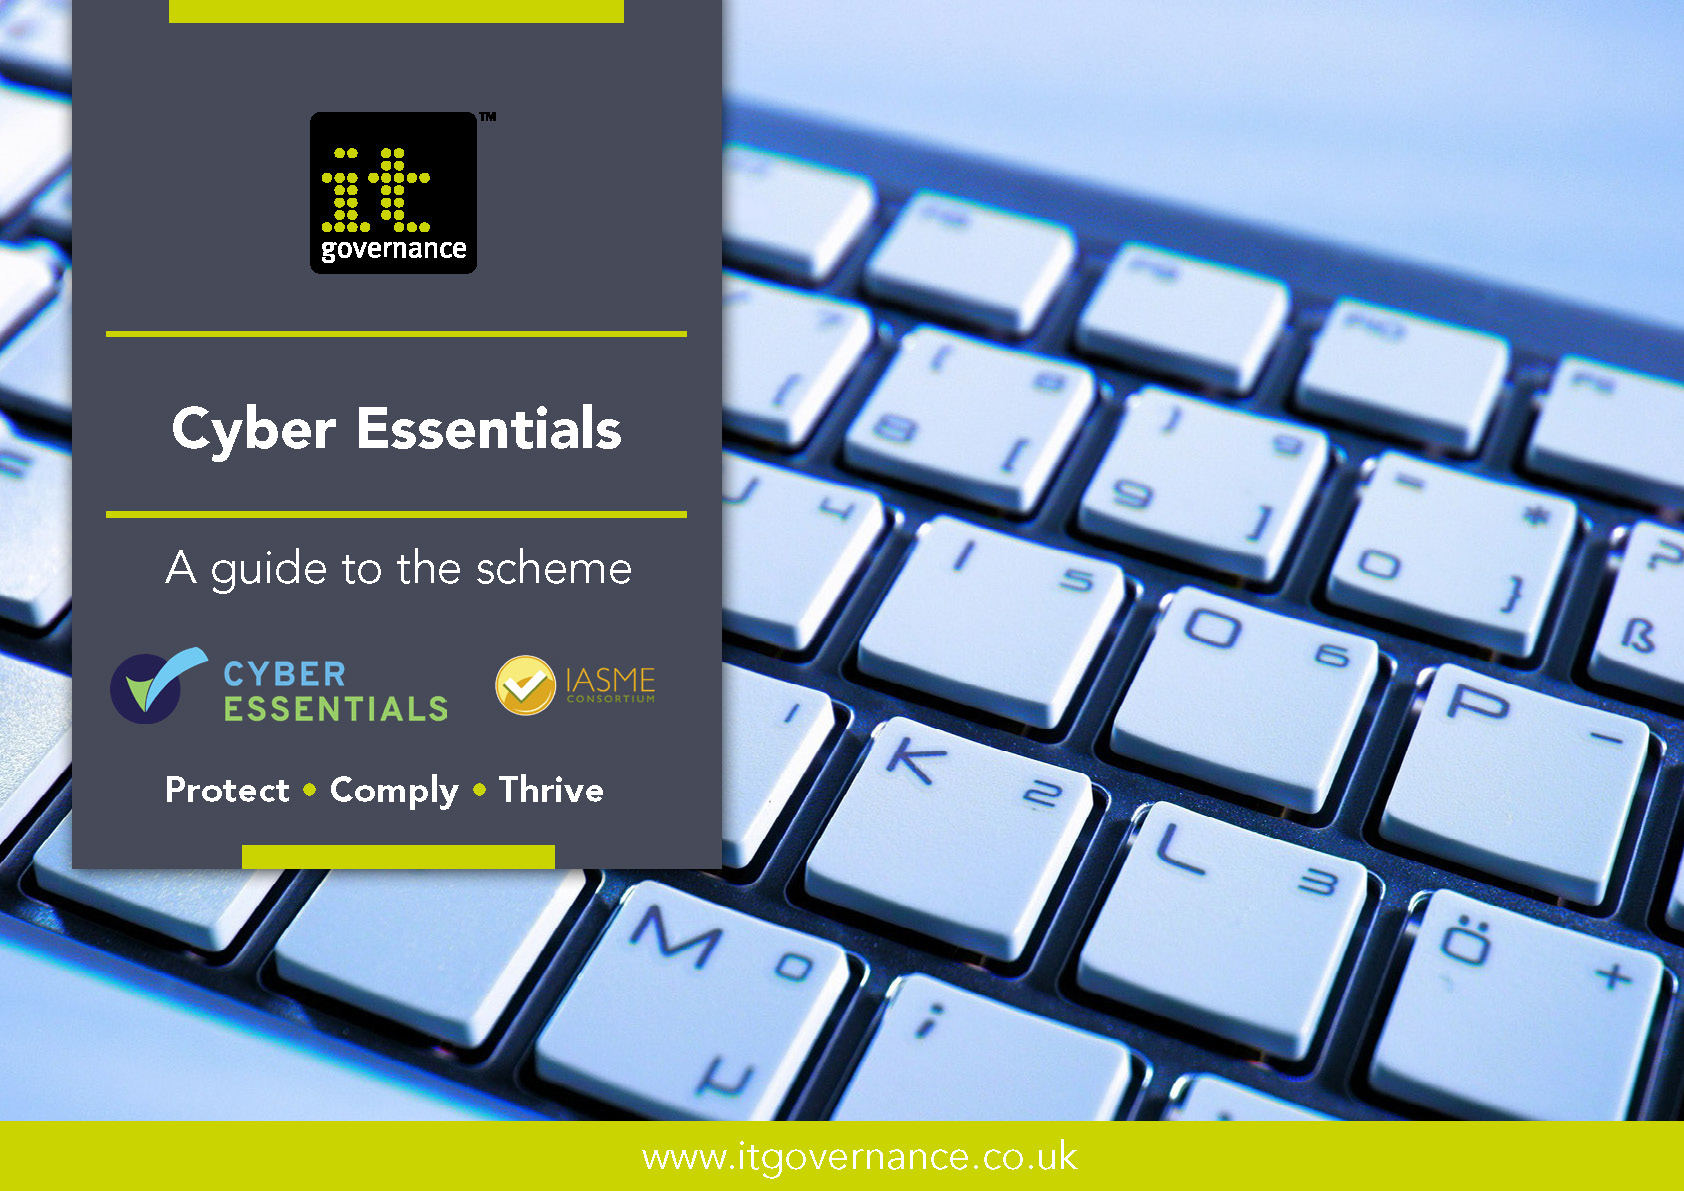 Cyber Essentials – A guide to the scheme